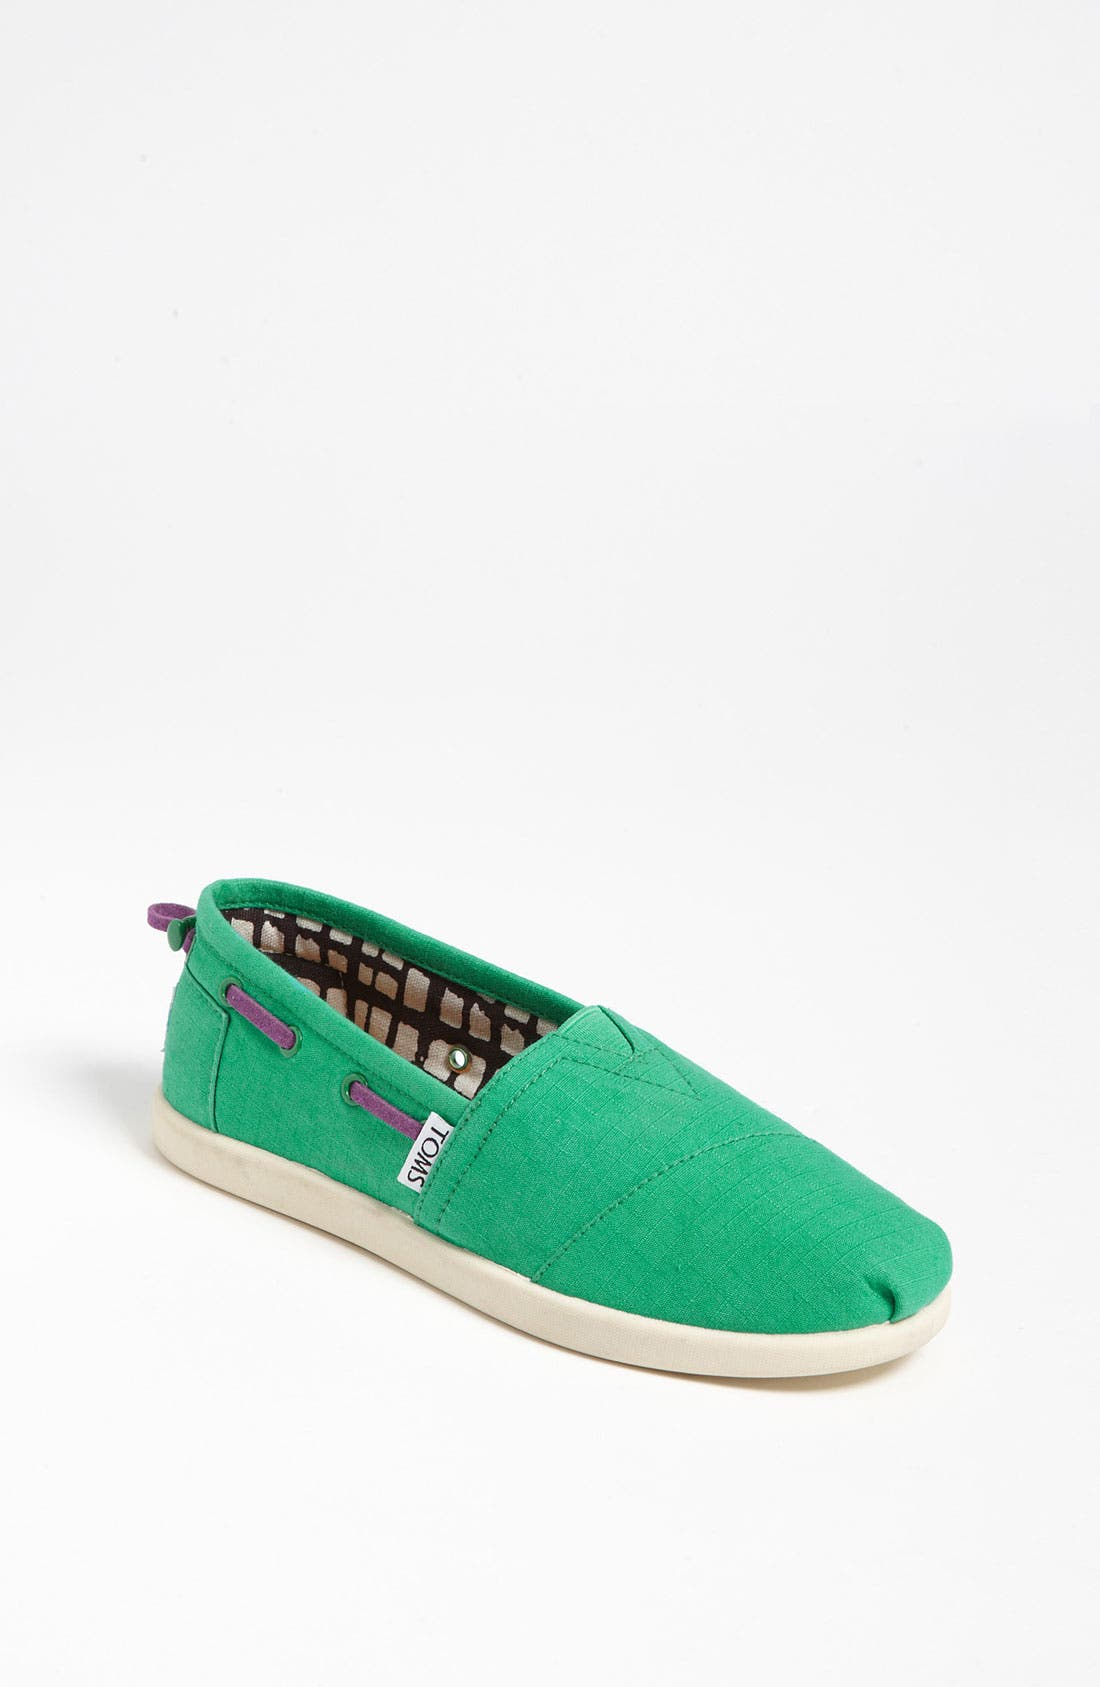 Alternate Image 1 Selected - TOMS 'Classic Youth - Bimini' Ripstop Slip-On (Toddler, Little Kid & Big Kid)